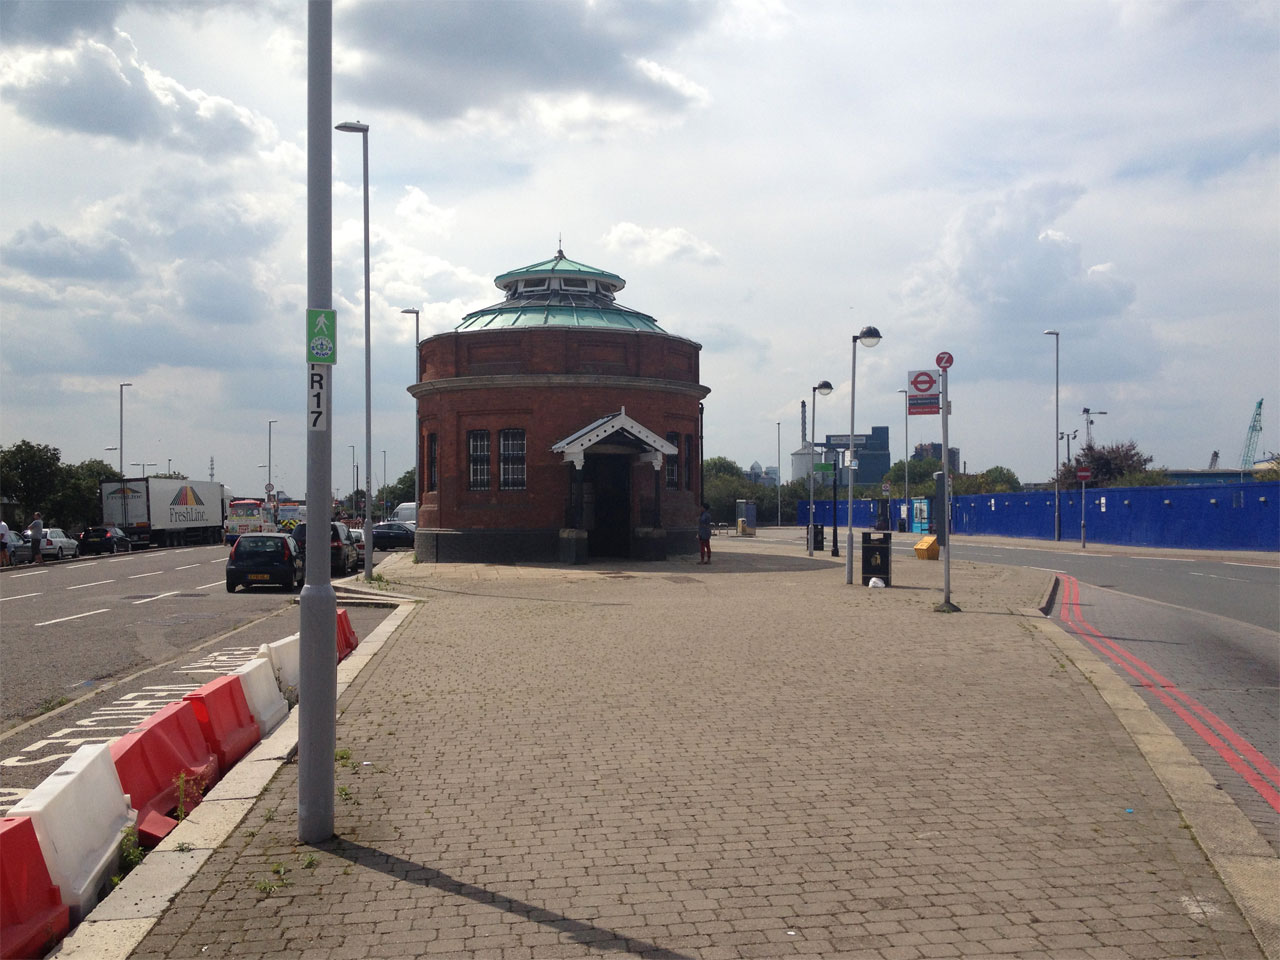 Entrance to the Woolwich foot tunnel, London